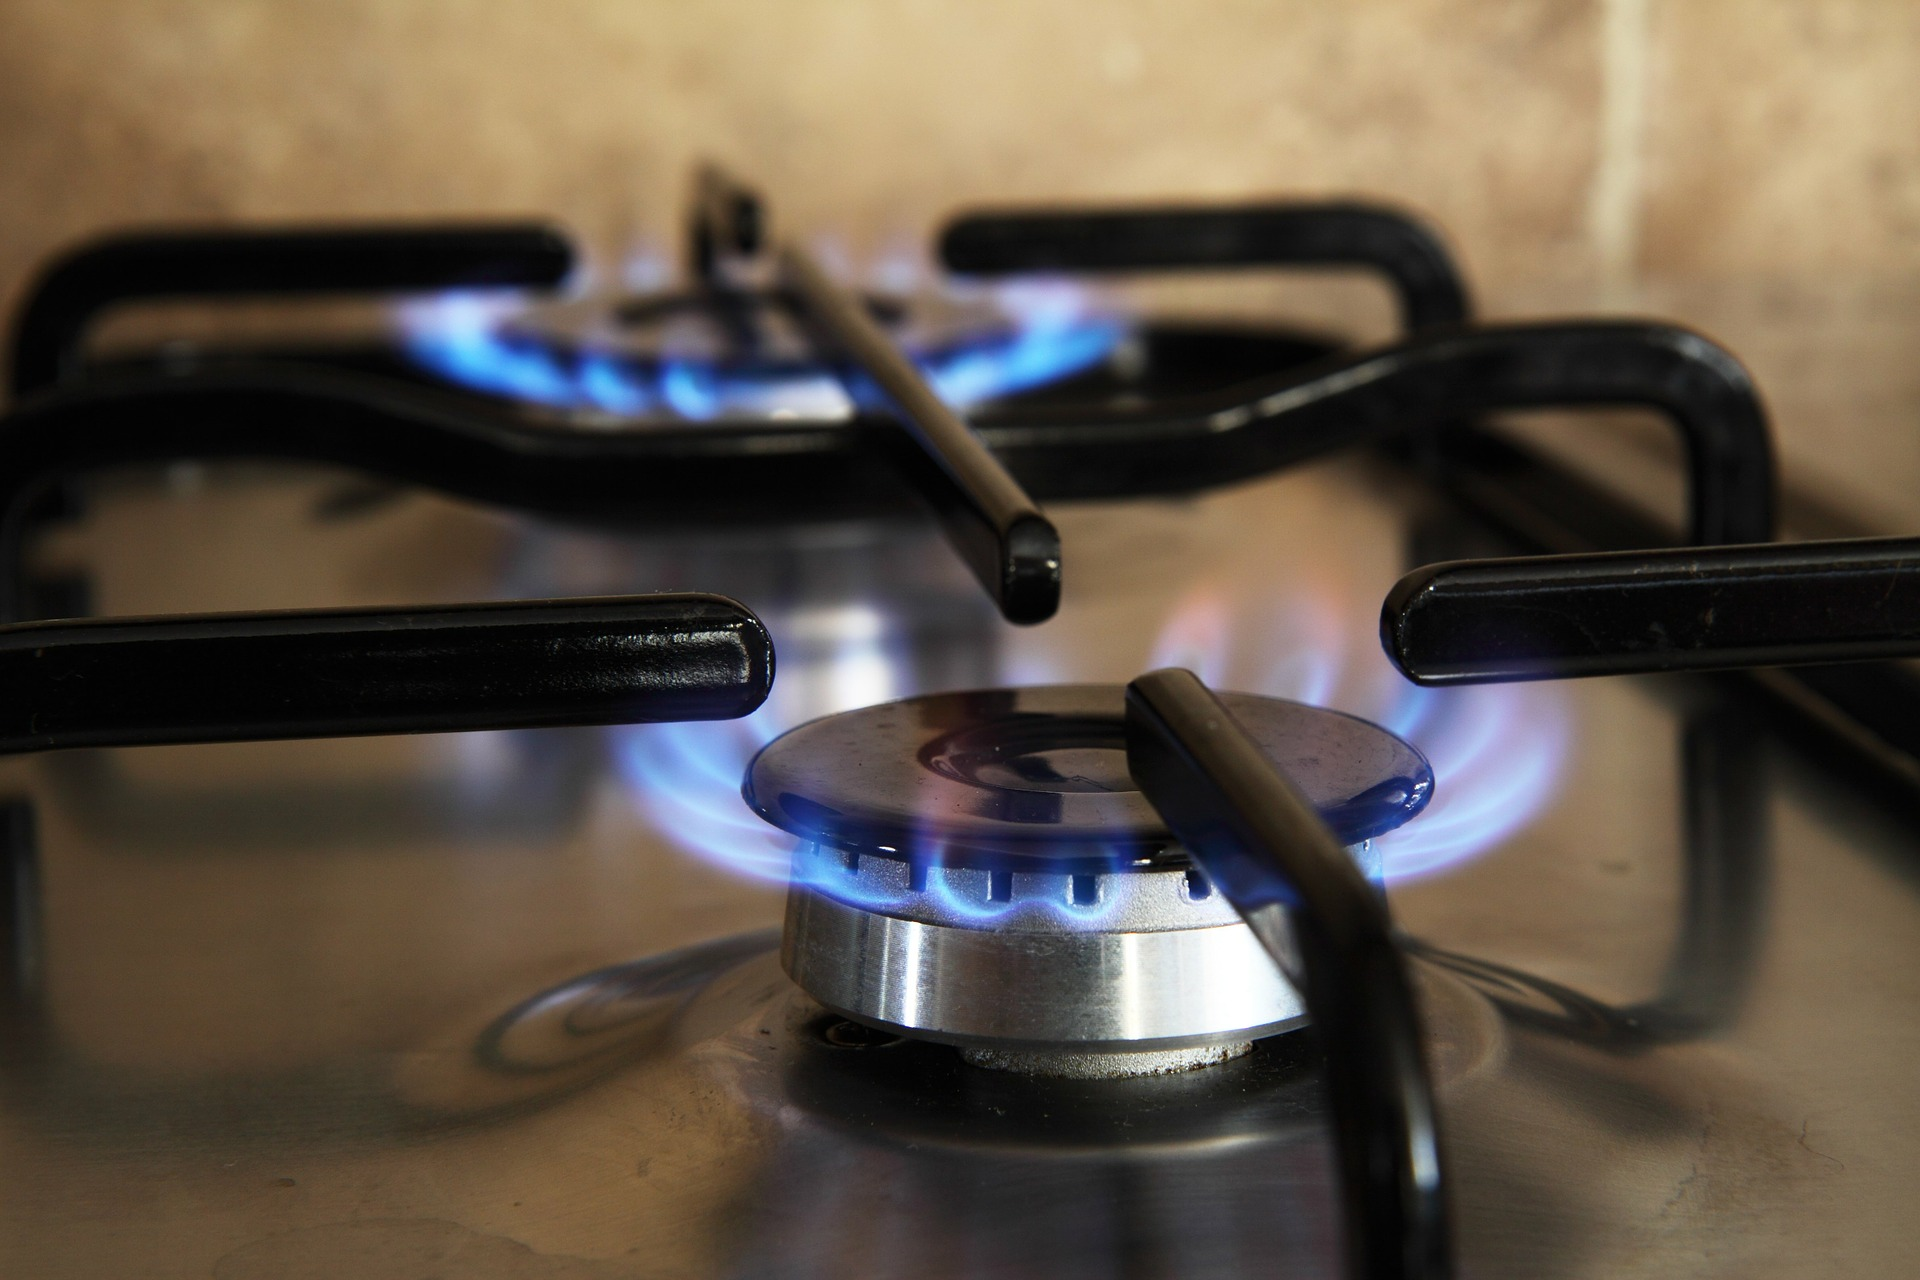 A gas appliance burner turned on in a black stovetop on the One Stop Plumbing gas appliances page